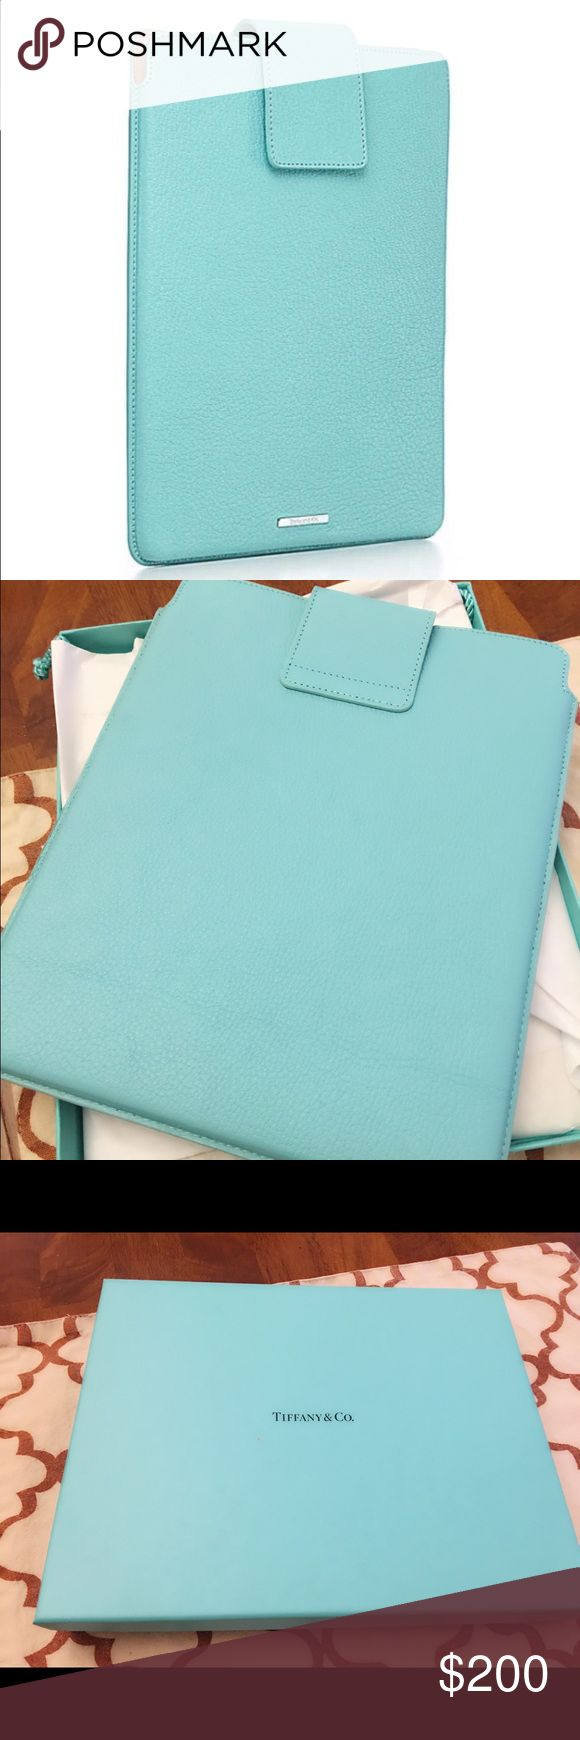 Authentic Tiffany & co iPad Cover Beautiful iPad cover made by Tiffany & co New in box,  front over front flap with snap closure, fits iPad 1,2,3 or any big iPad . Authentic ❤ comes with box and bag. Tiffany & Co. Accessories Tablet Cases